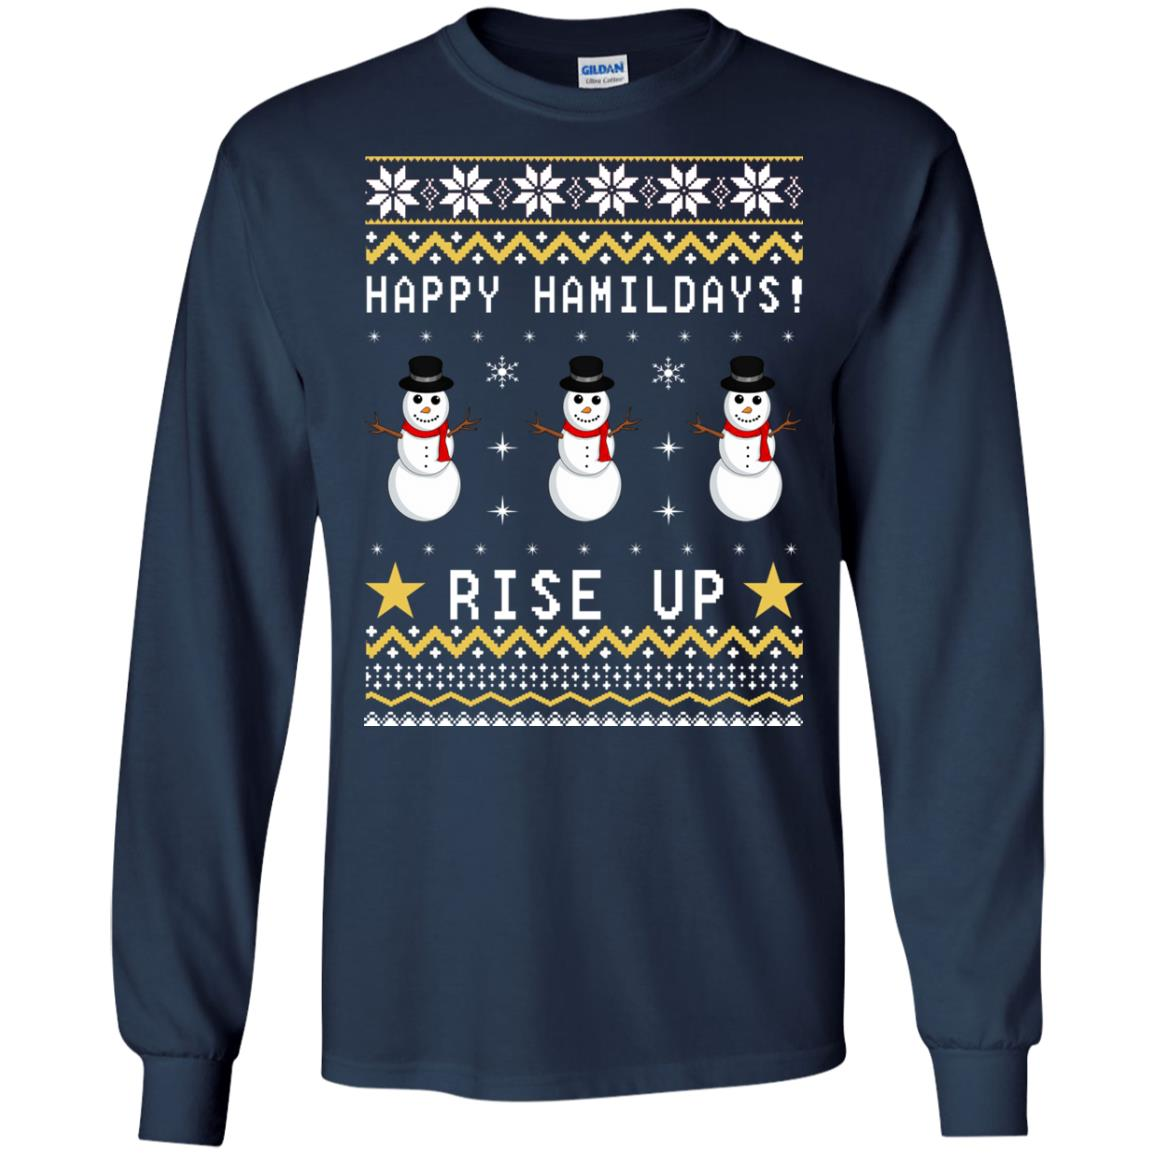 Happy Hamildays Rise Up Christmas Ugly Sweater, Shirt - image 3393